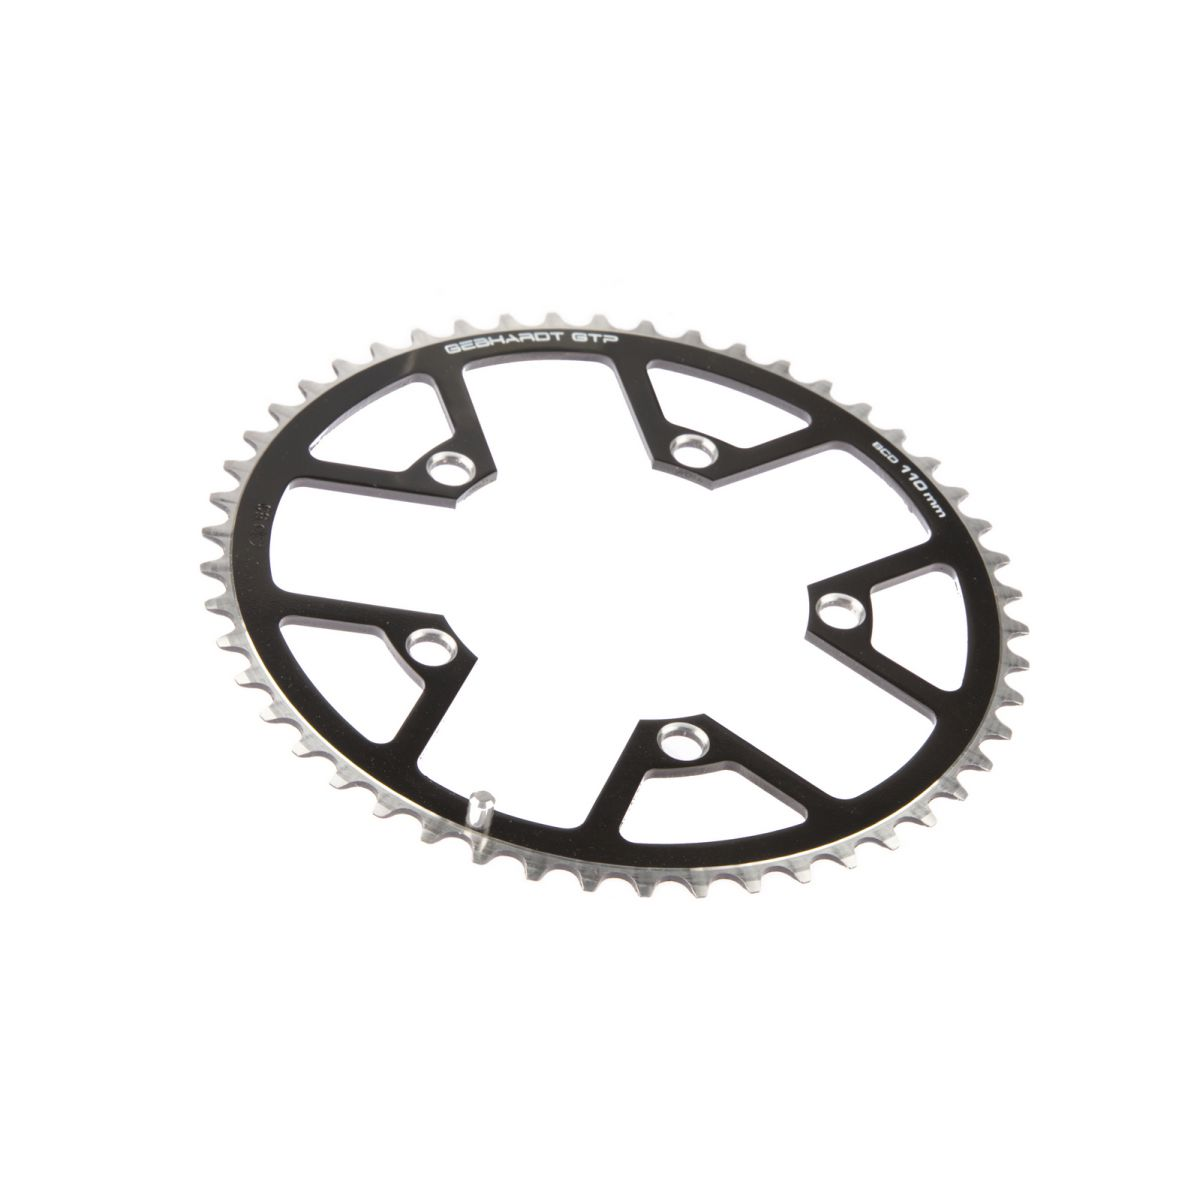 gebhardt chainring classic bcd 110 mm 5hole 50t black